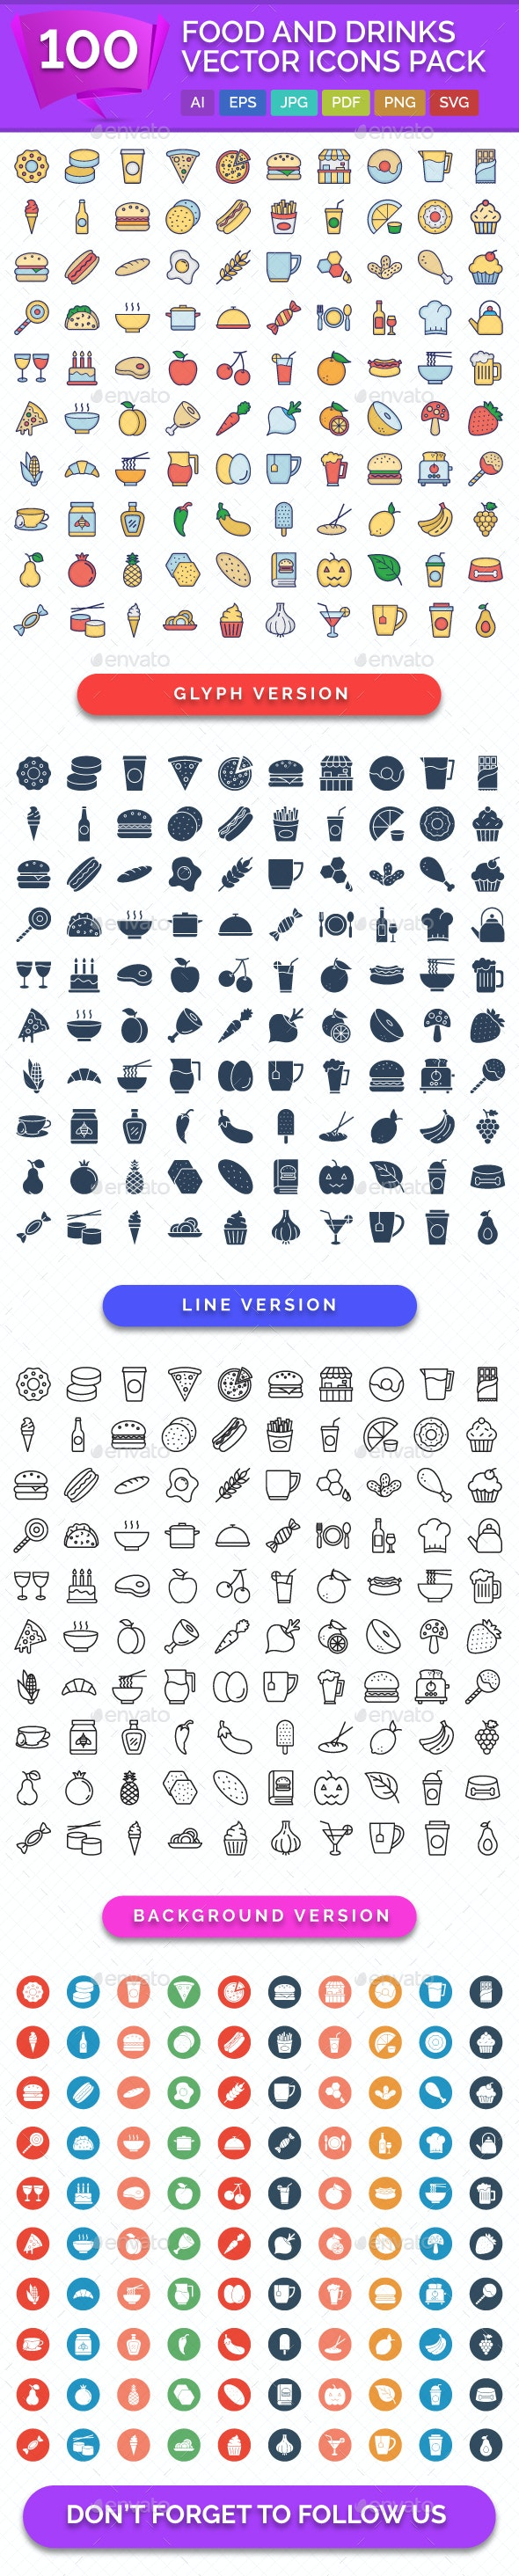 100 Food and Drinks Vector Icons Pack - Icons